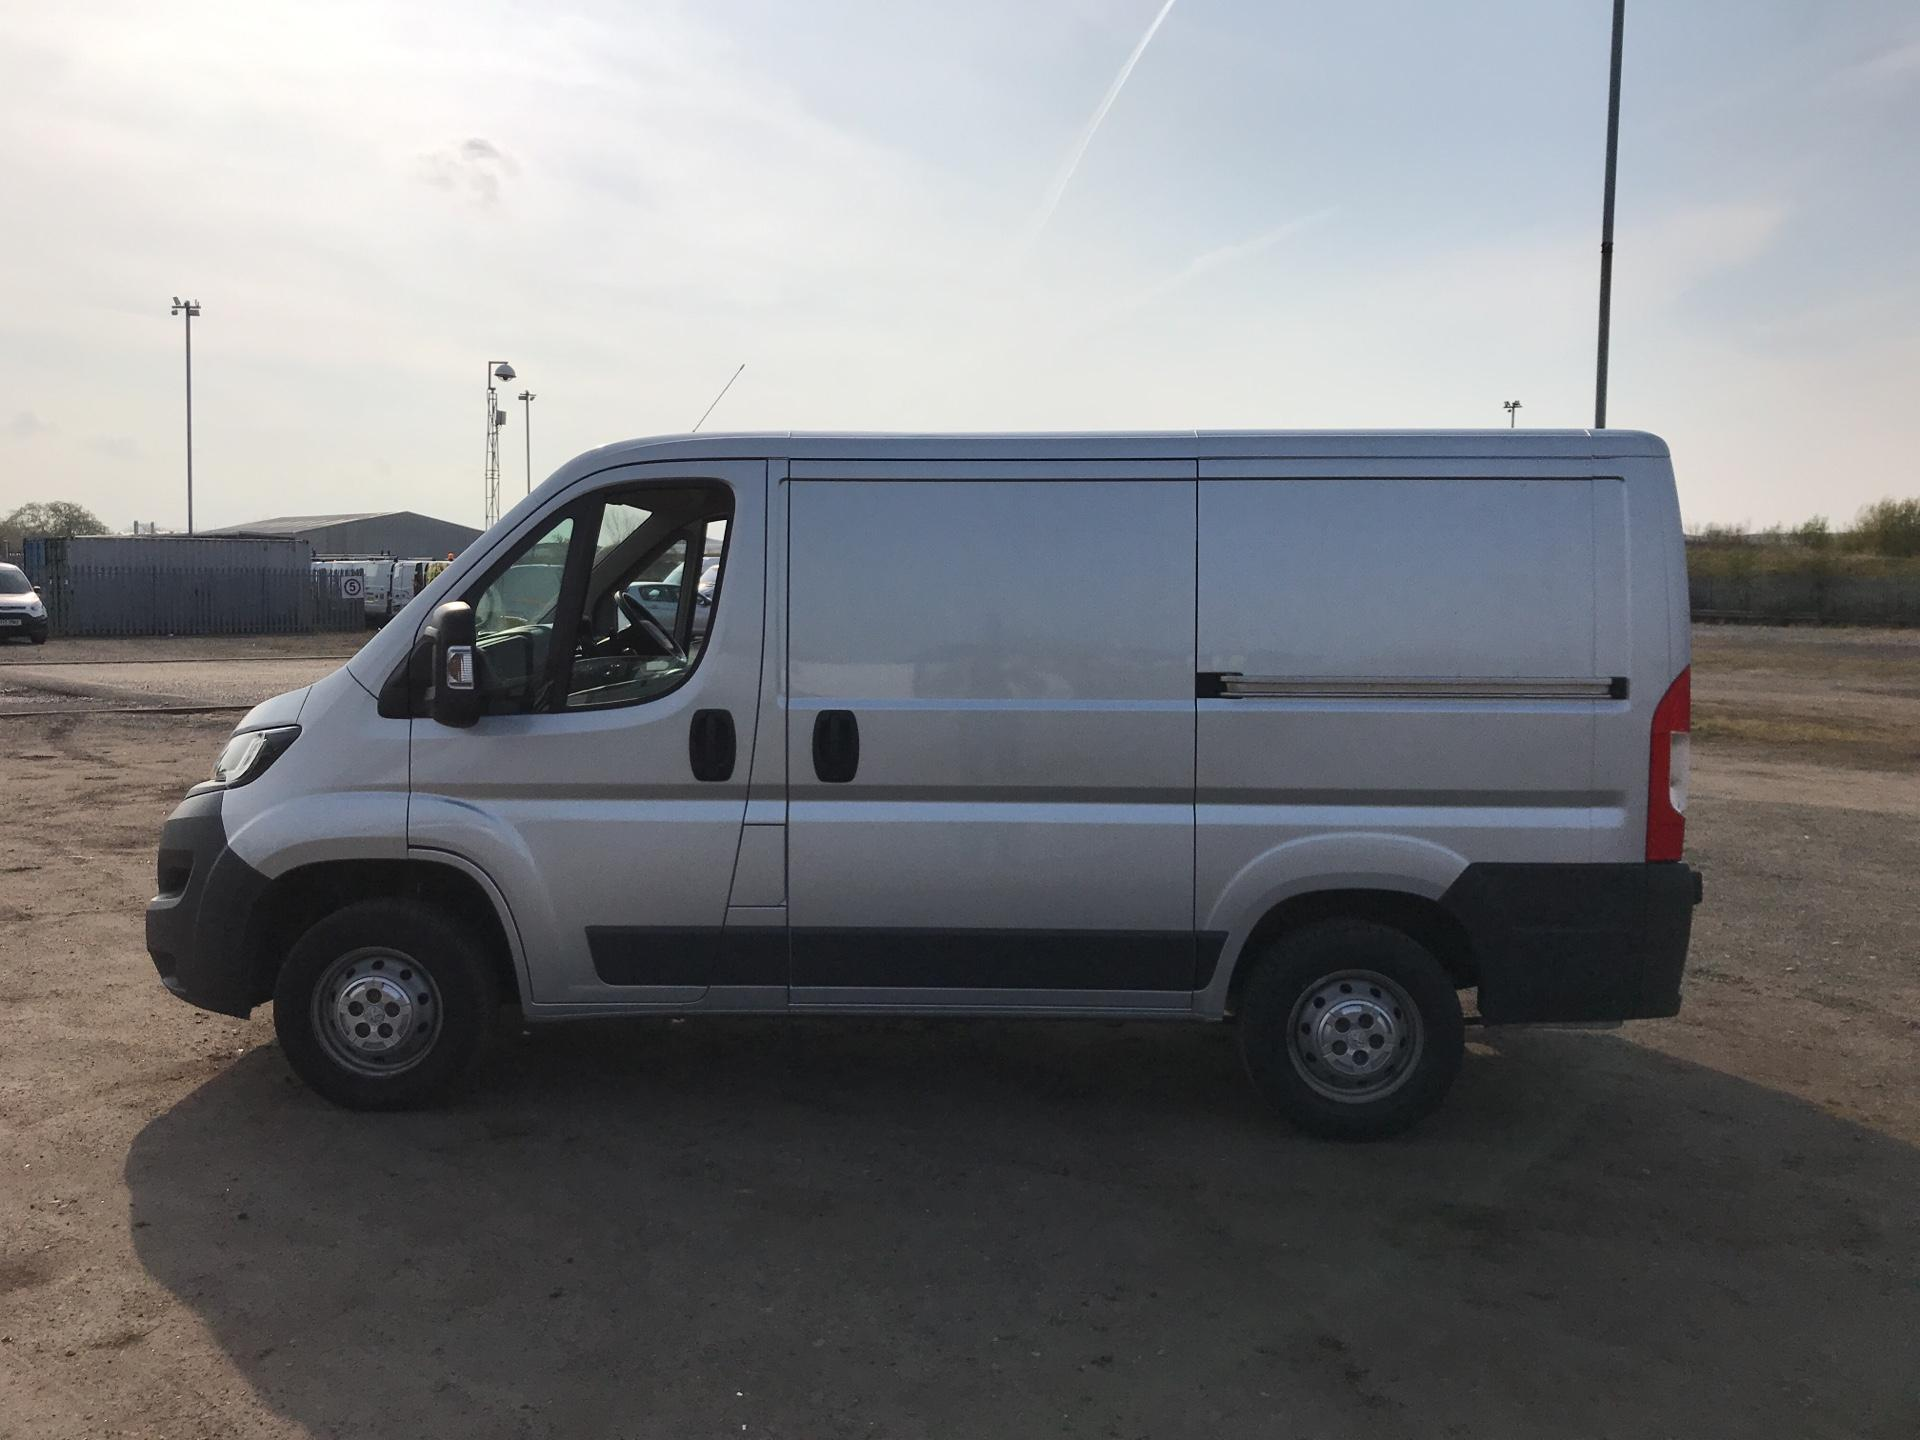 2016 Peugeot Boxer 2.0 Bluehdi H1  Professional Van 110Ps *VALUE RANGE VEHICLE CONDITION REFLECTED IN PRICE* (NG16NMO) Image 6